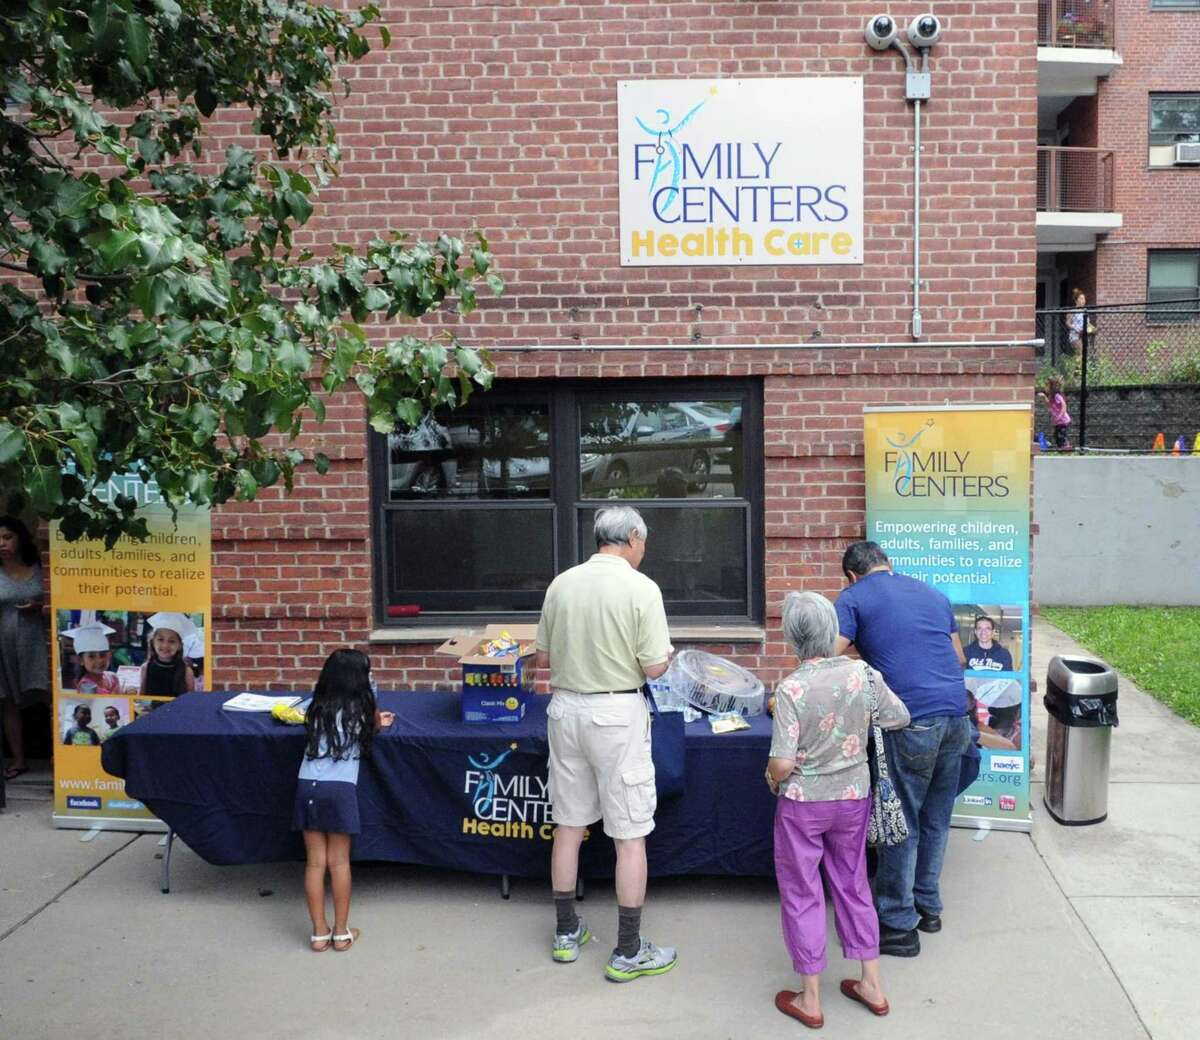 The Family Centers Health Care Fair celebrates National Health Center Week at Wilbur Peck Court in Greenwich on Aug. 12, 2017. Family Centers helps people in need across the community in a variety of ways.